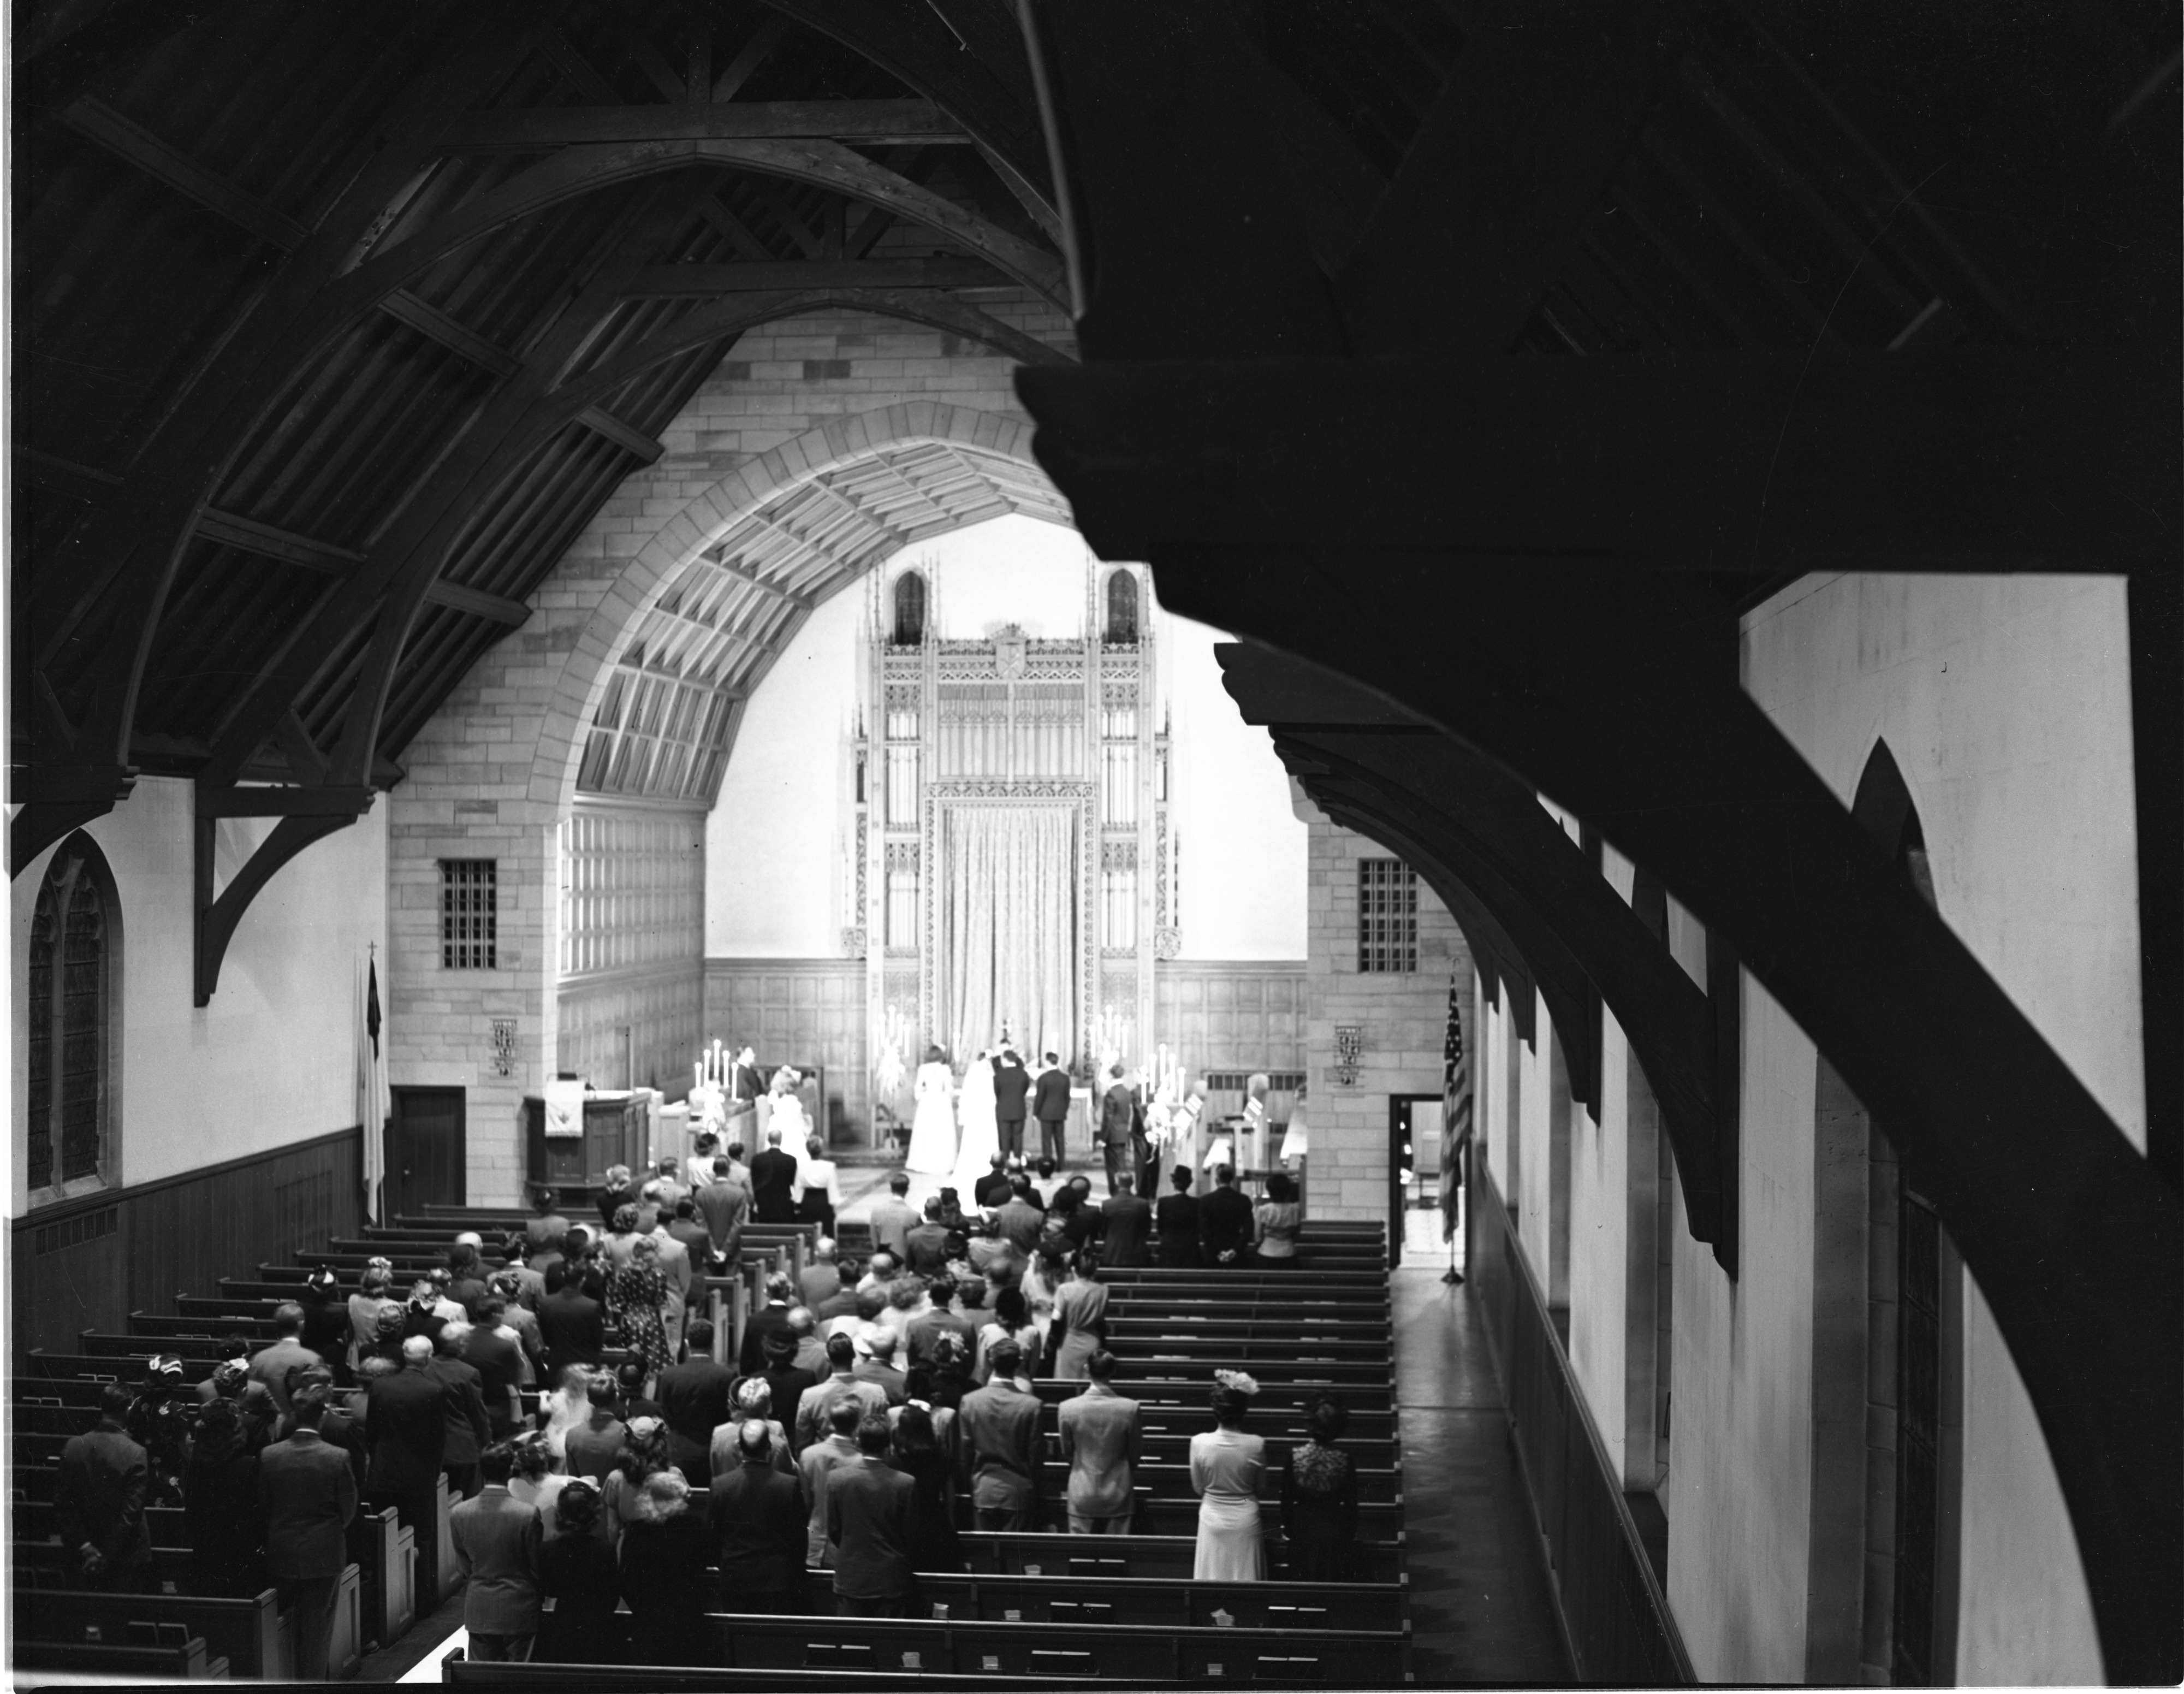 Evening Wedding Of Dorothy Edgar & Alvin Bek At First Presbyterian Church - September 7, 1946 image